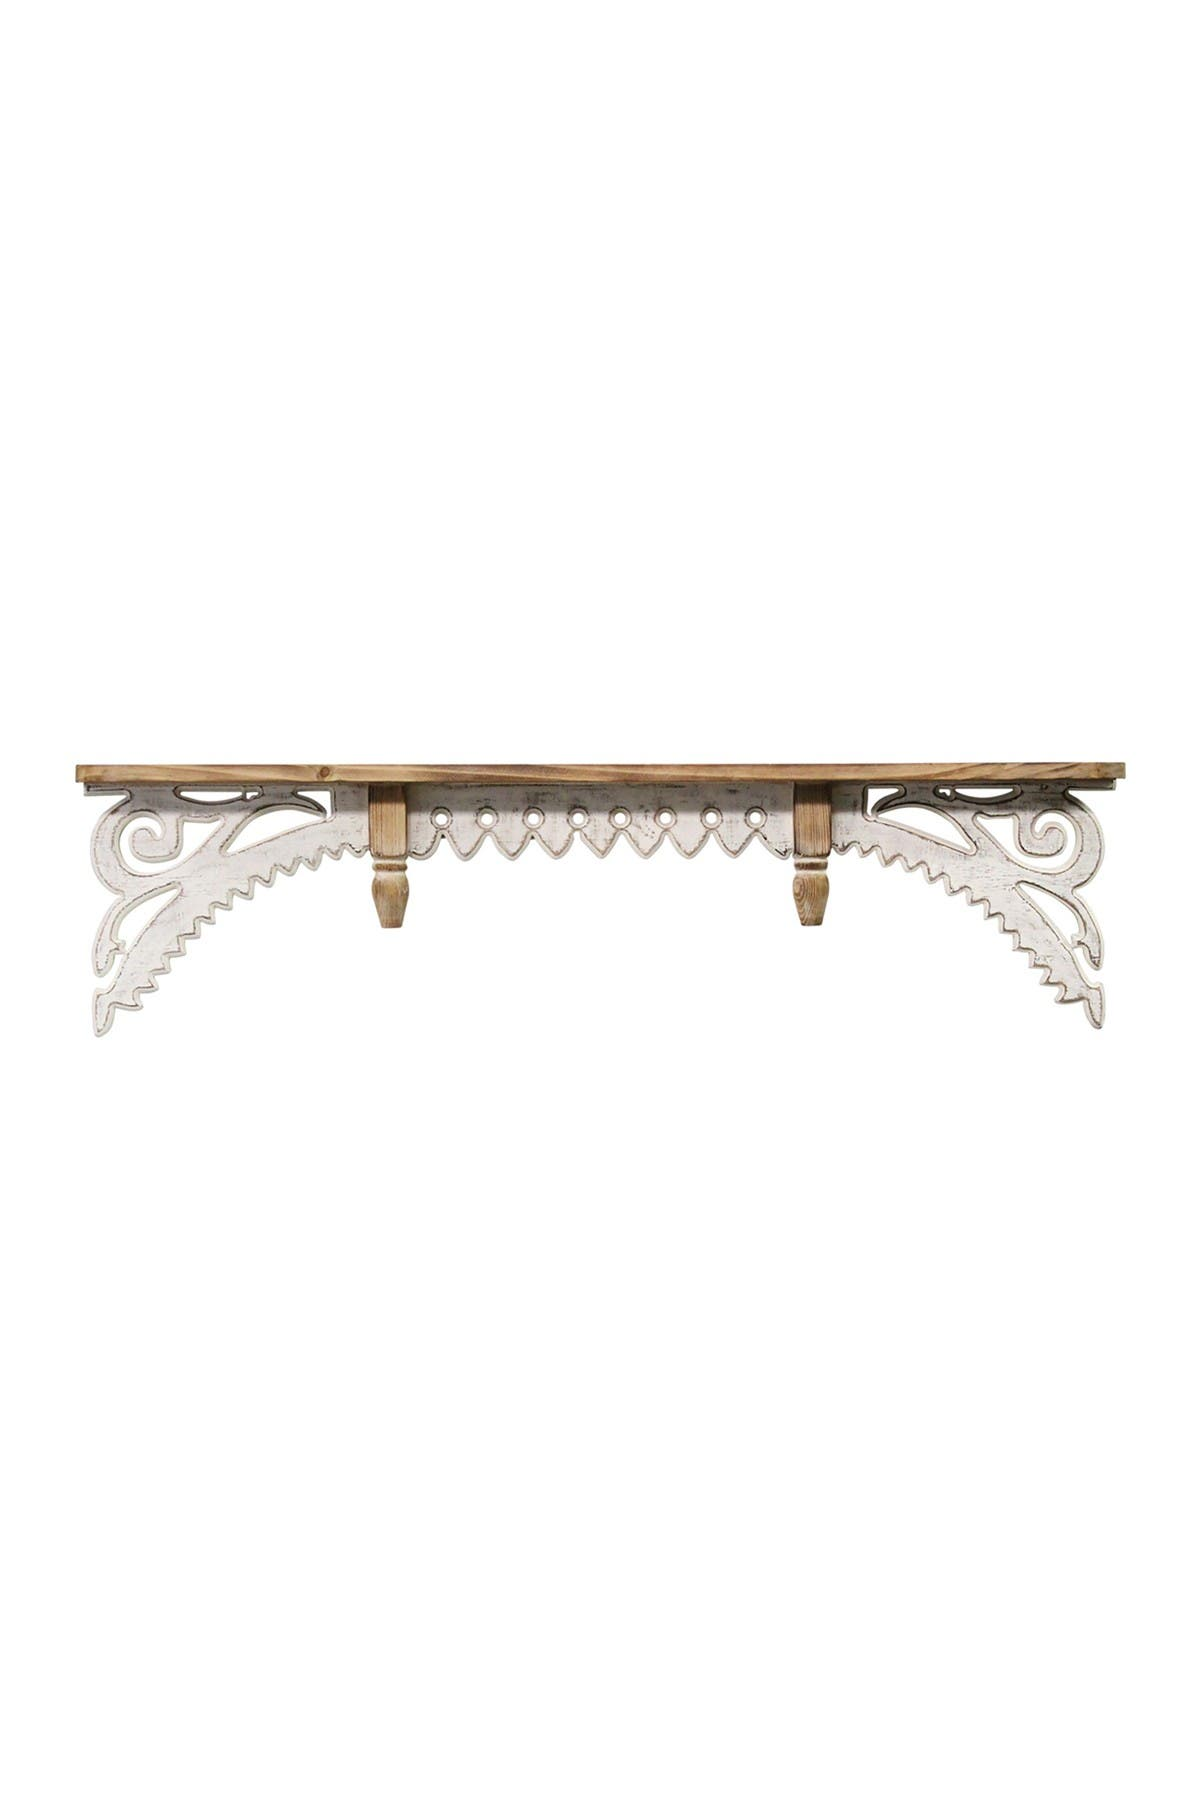 Image of Stratton Home Vintage Wood Wall Shelf